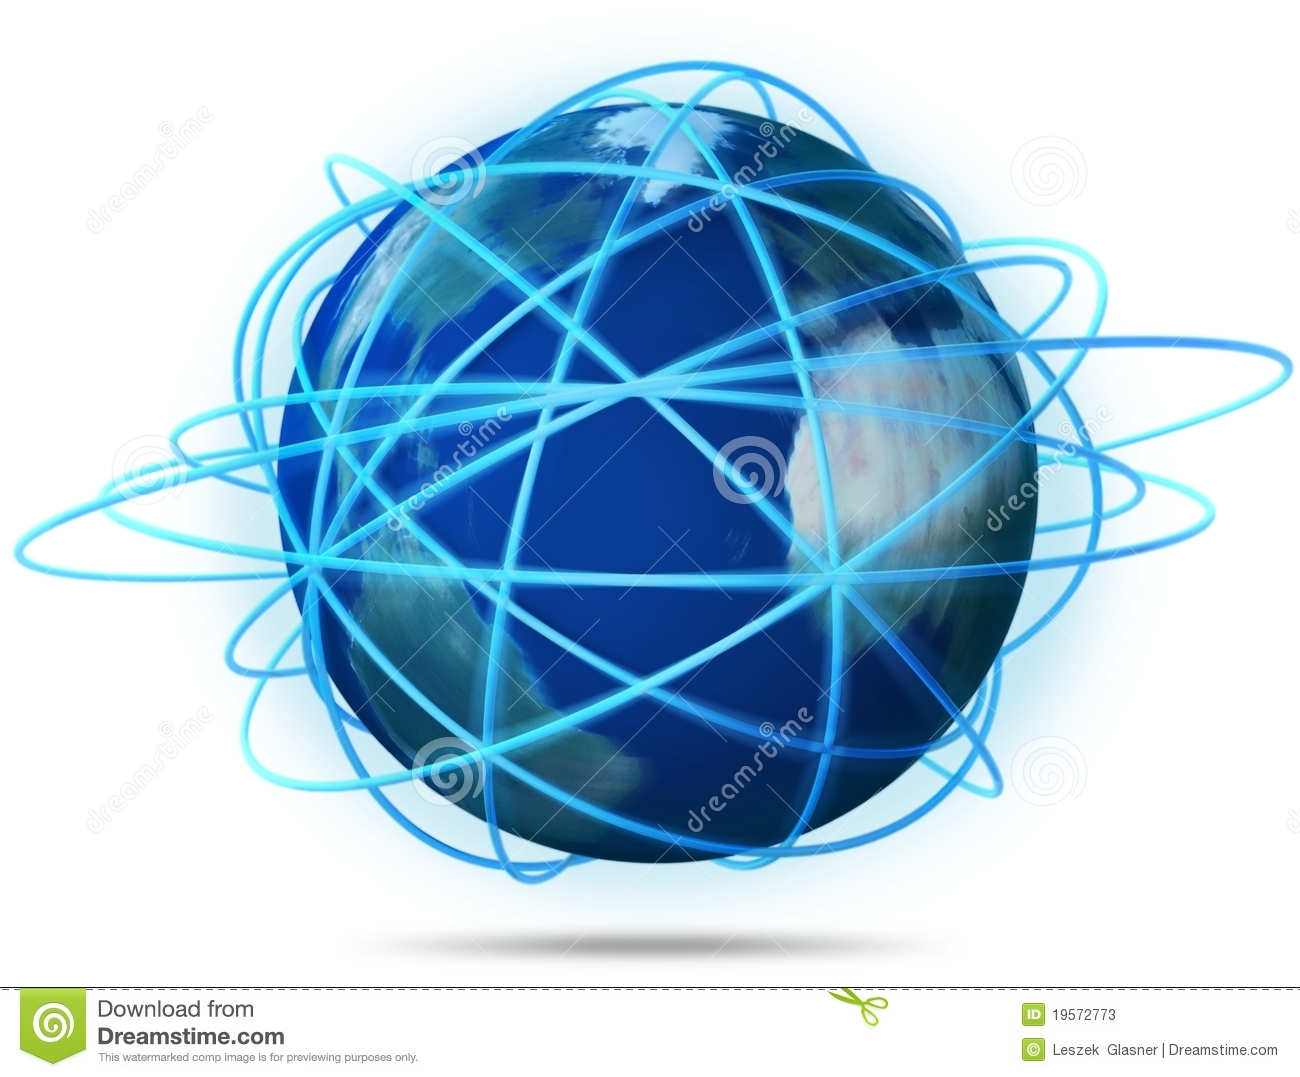 earth-web-network-internet-isolated-white-19572773.jpg